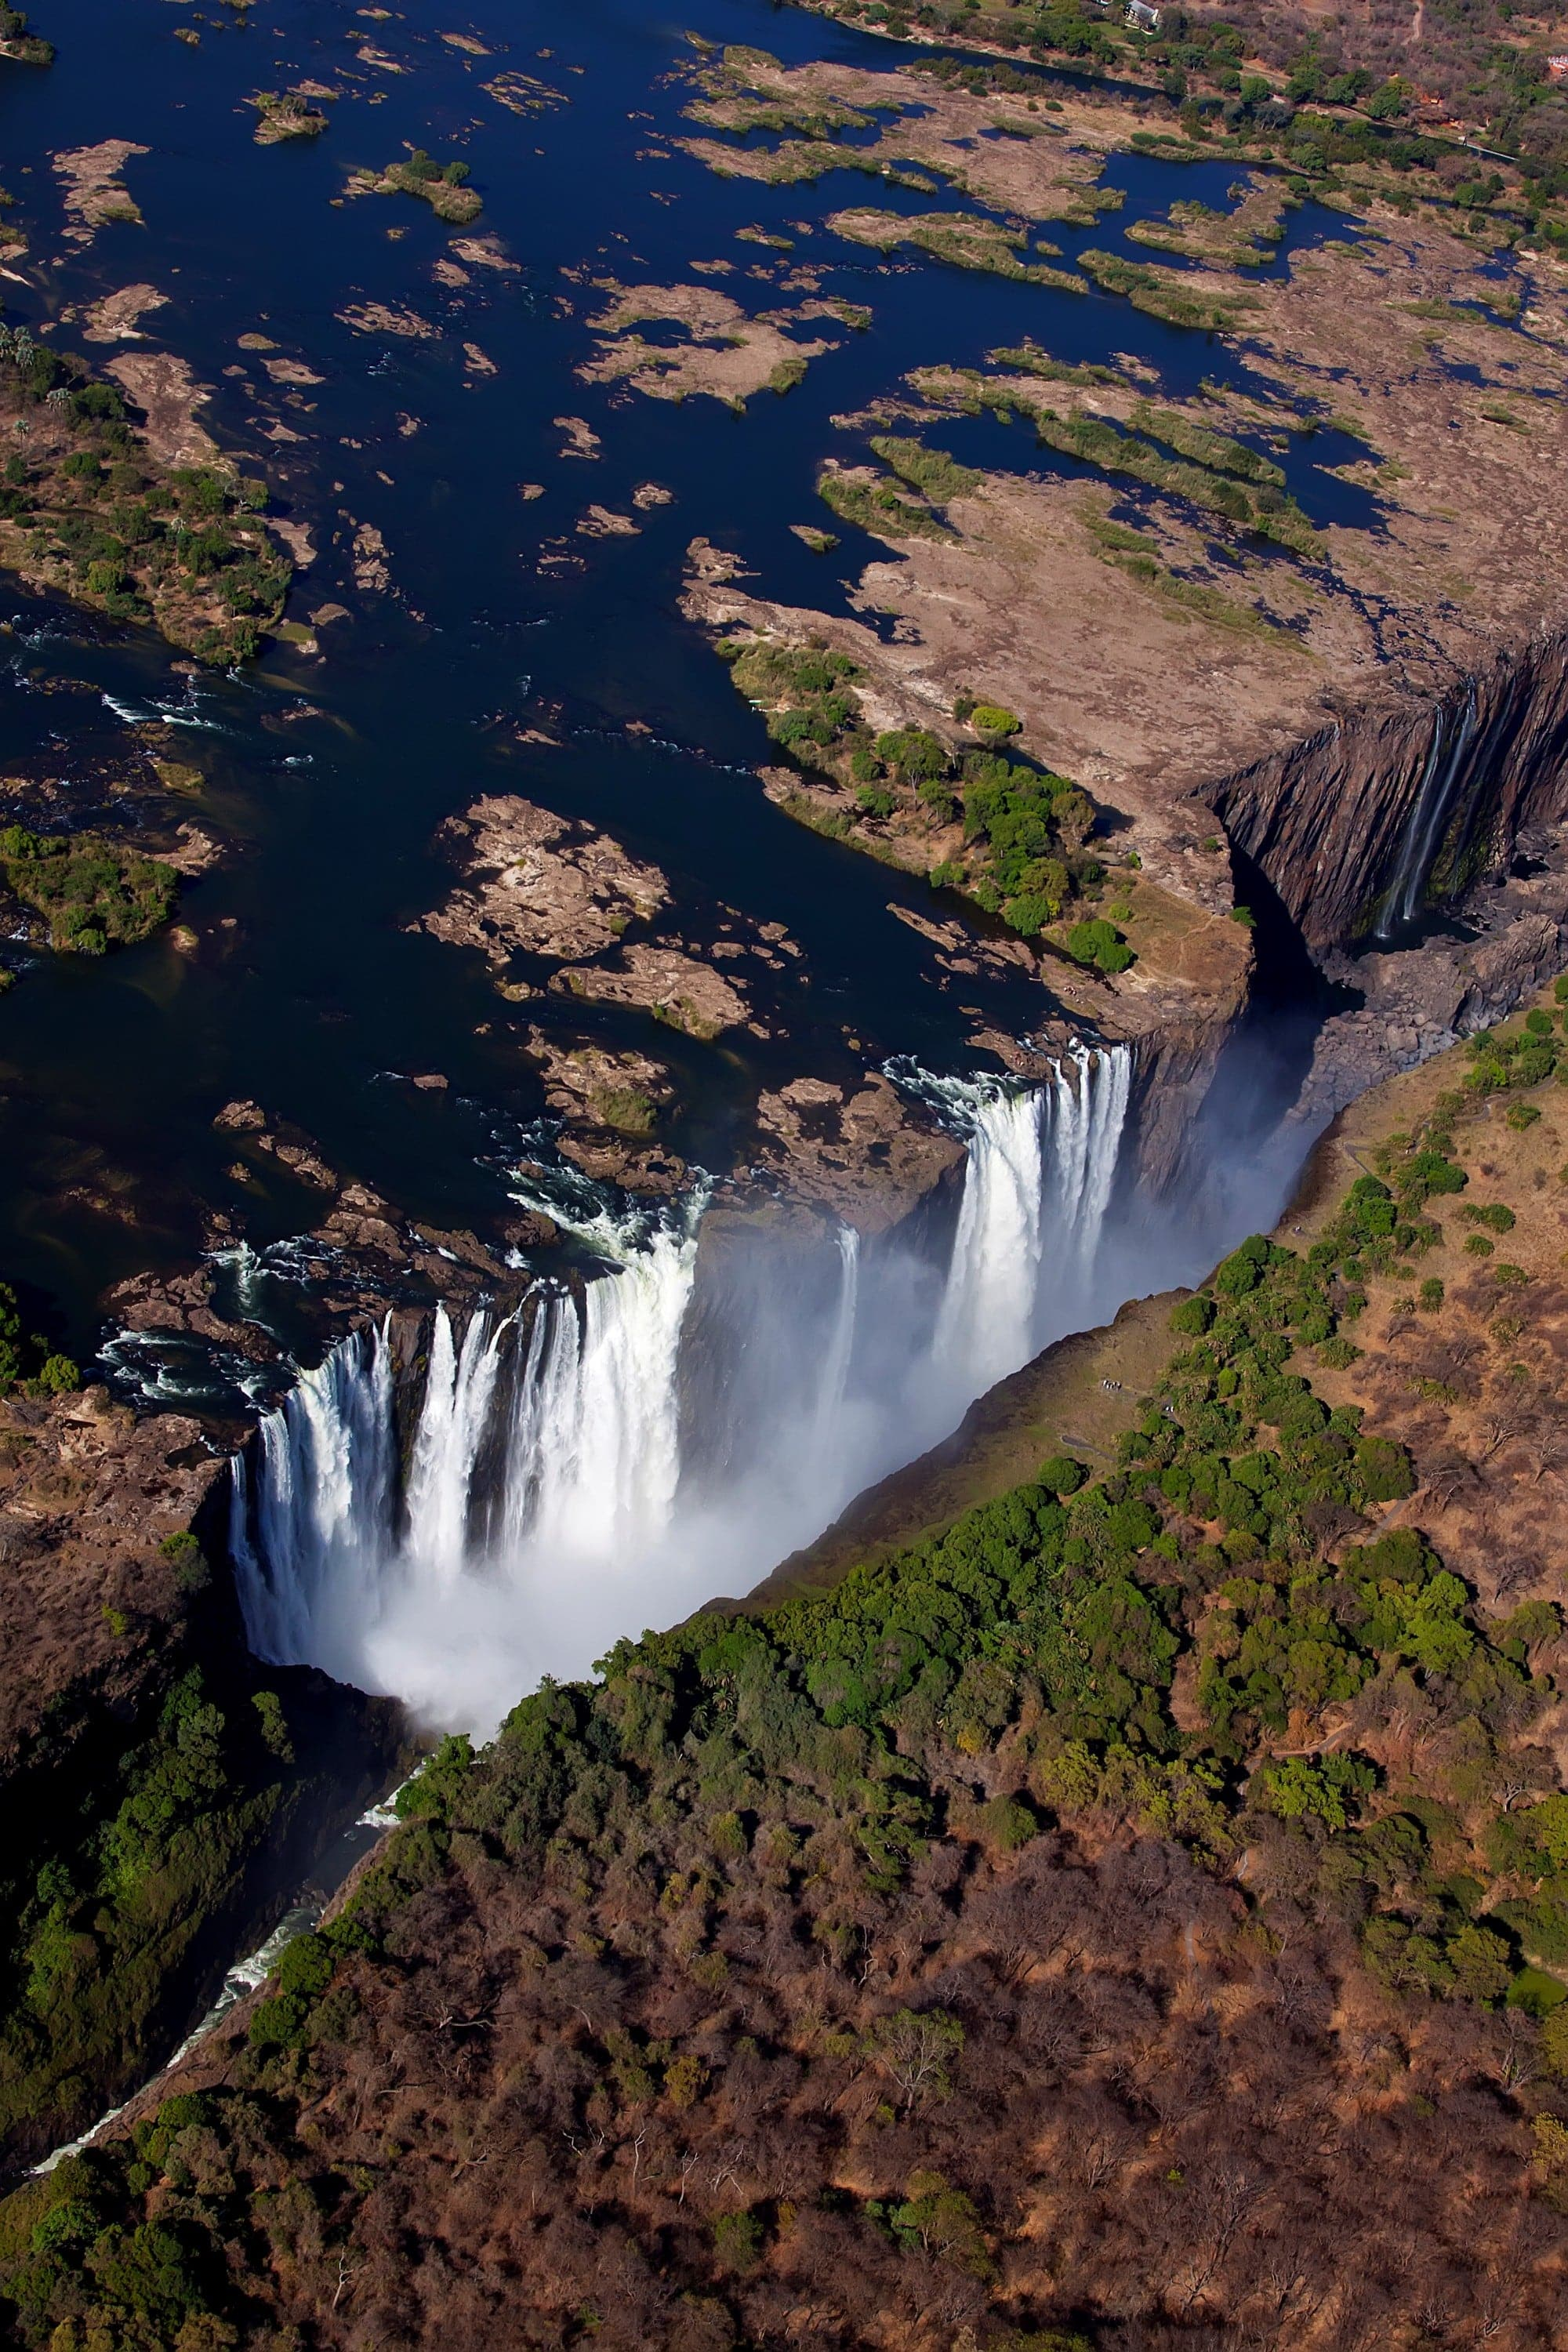 DevilsPool-Vic-Falls-from-chopper-Jonathan-Dale (2)